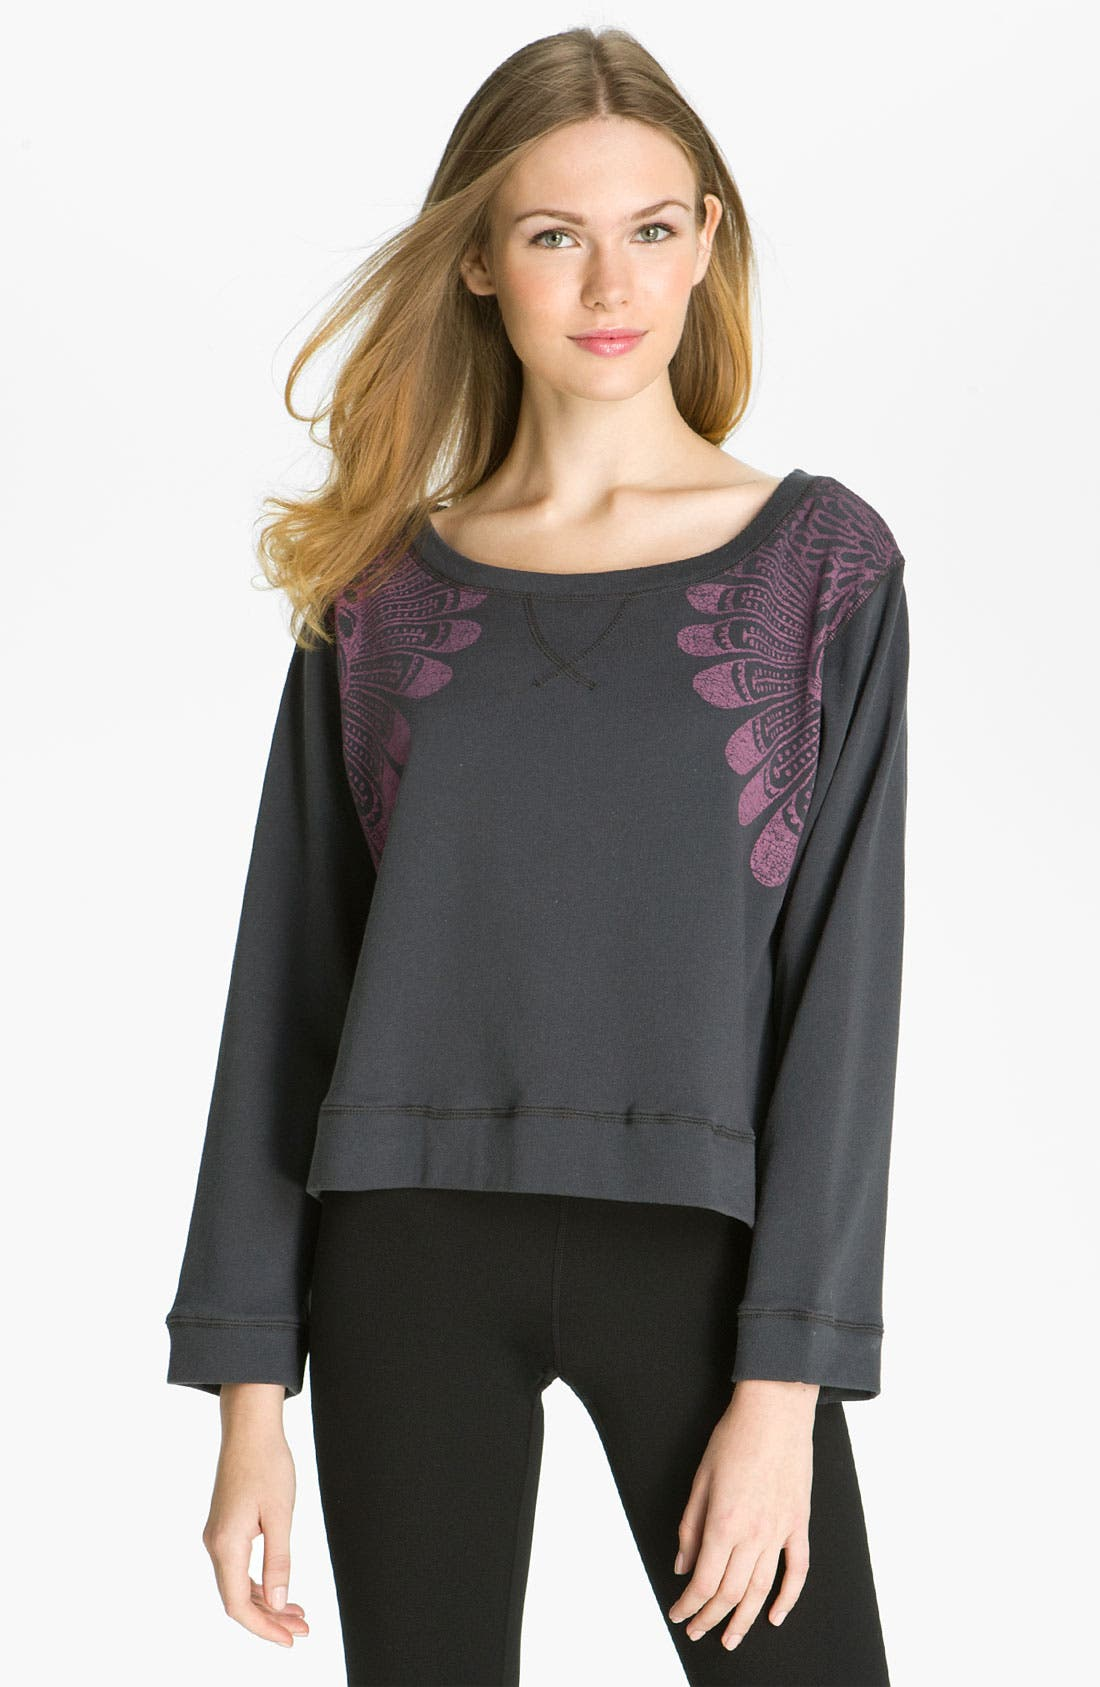 Main Image - Steve Madden 'Dream Catcher' Sweatshirt